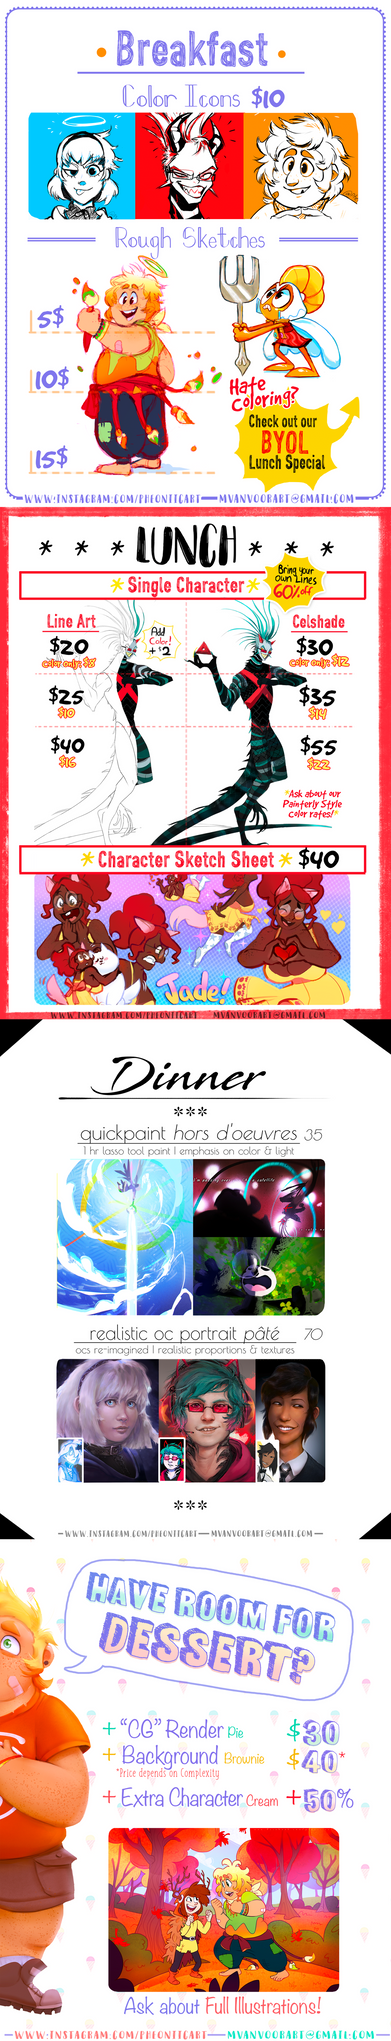 *Pheoniic's 2018 YUMMY COMMISSIONS* [ON HOLD] by Pheoniic